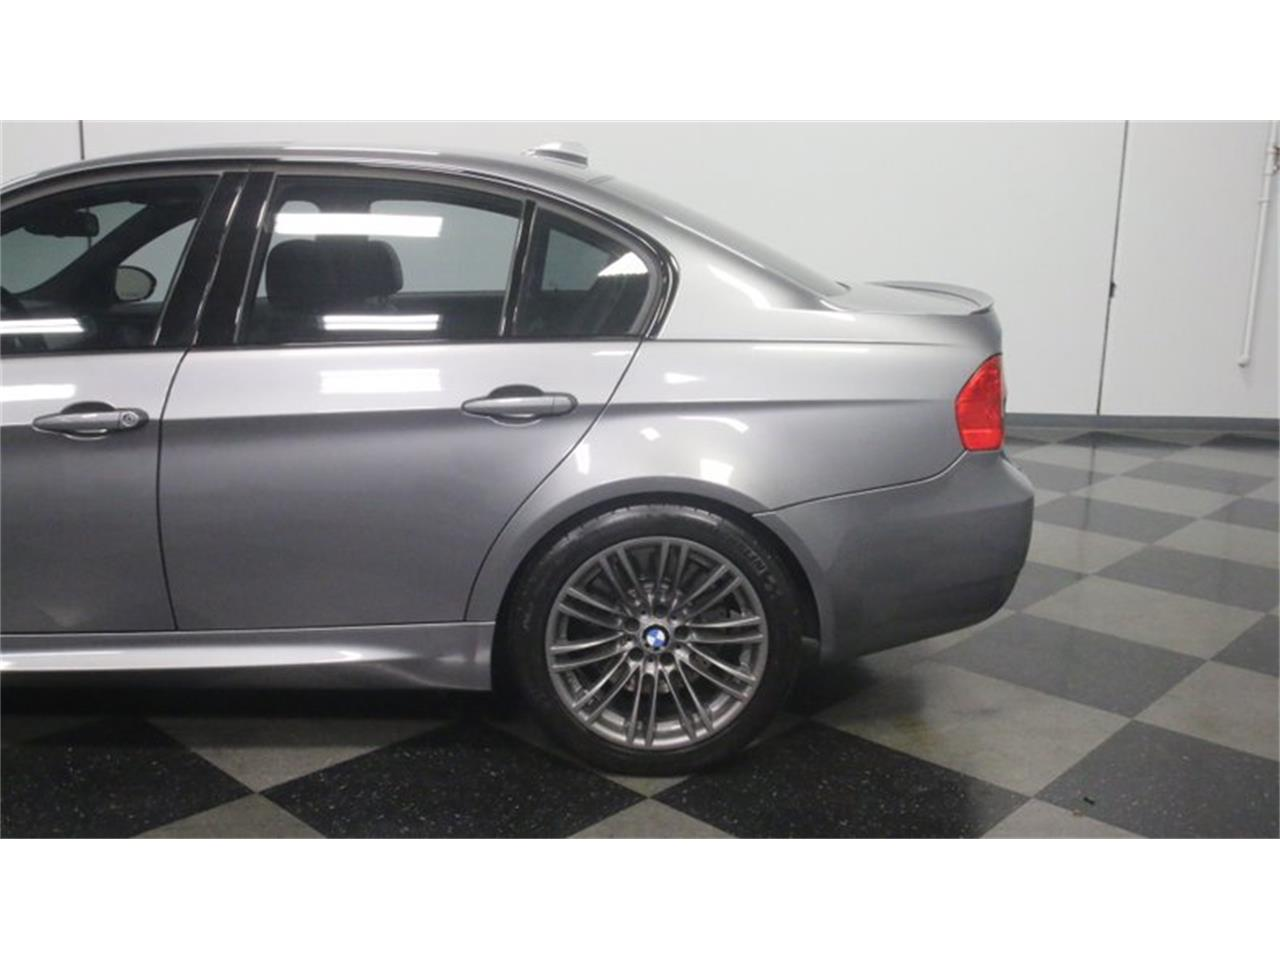 2010 BMW M3 for sale in Lithia Springs, GA – photo 25